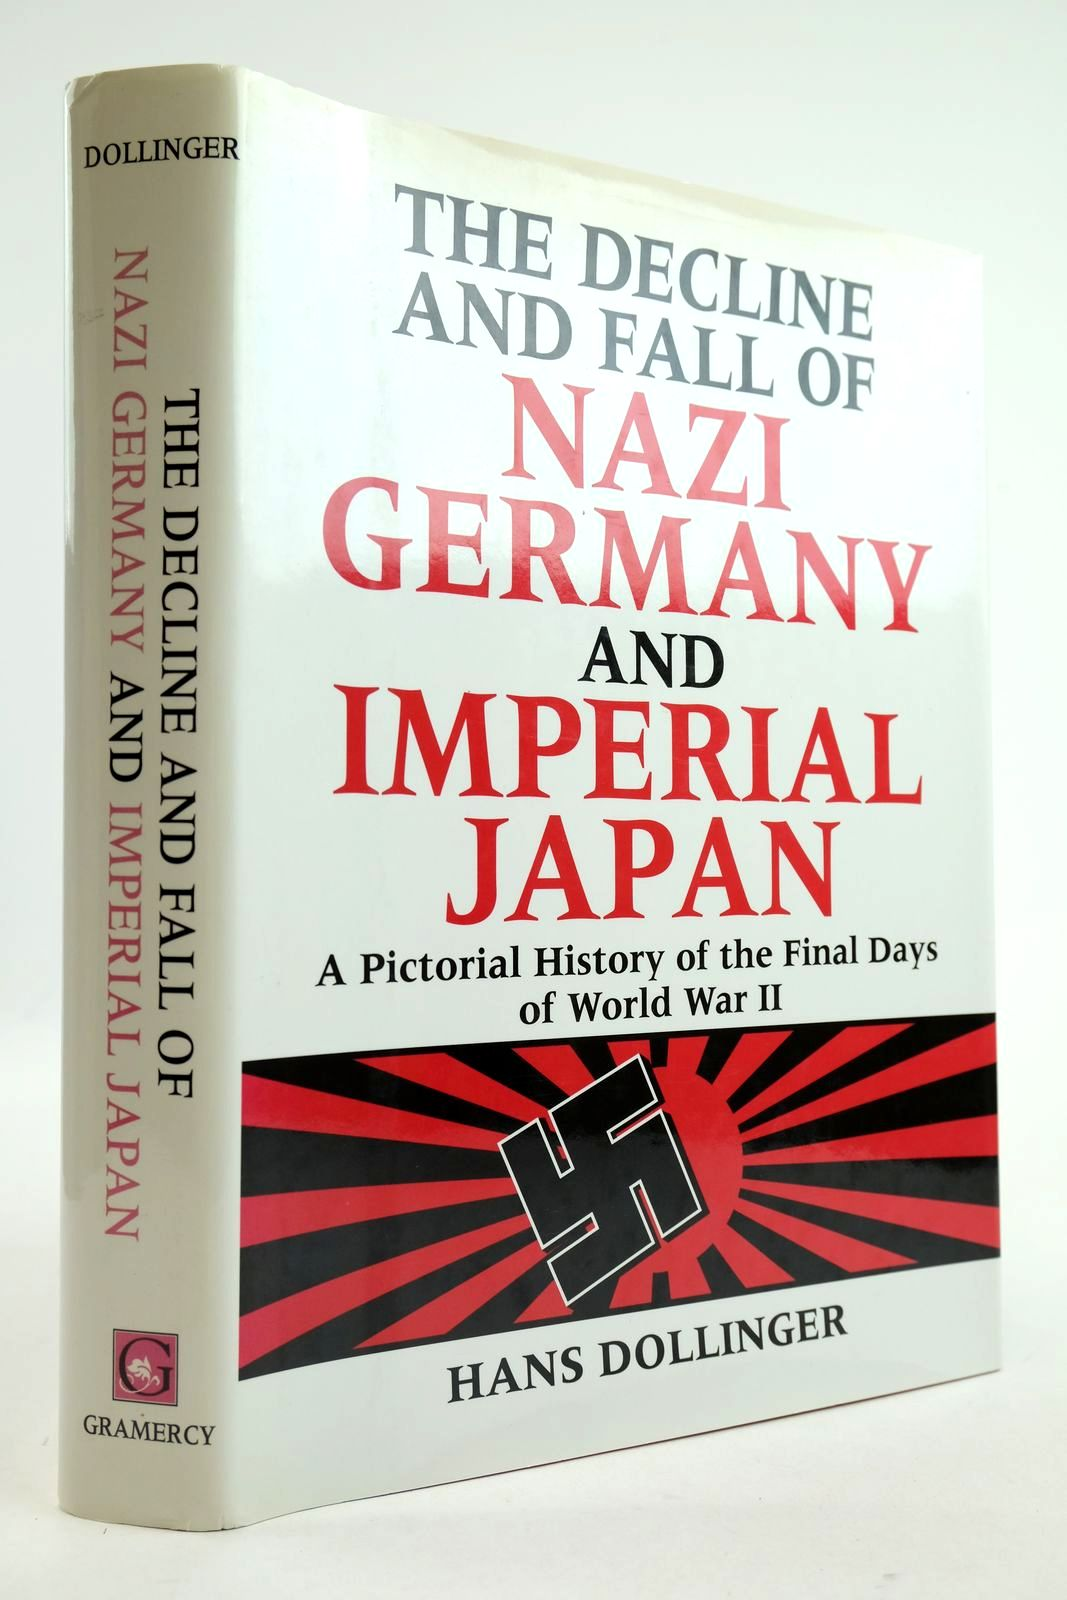 Photo of THE DECLINE AND FALL OF NAZI GERMANY AND IMPERIAL JAPAN written by Dollinger, Hans published by Gramercy Books (STOCK CODE: 2133088)  for sale by Stella & Rose's Books